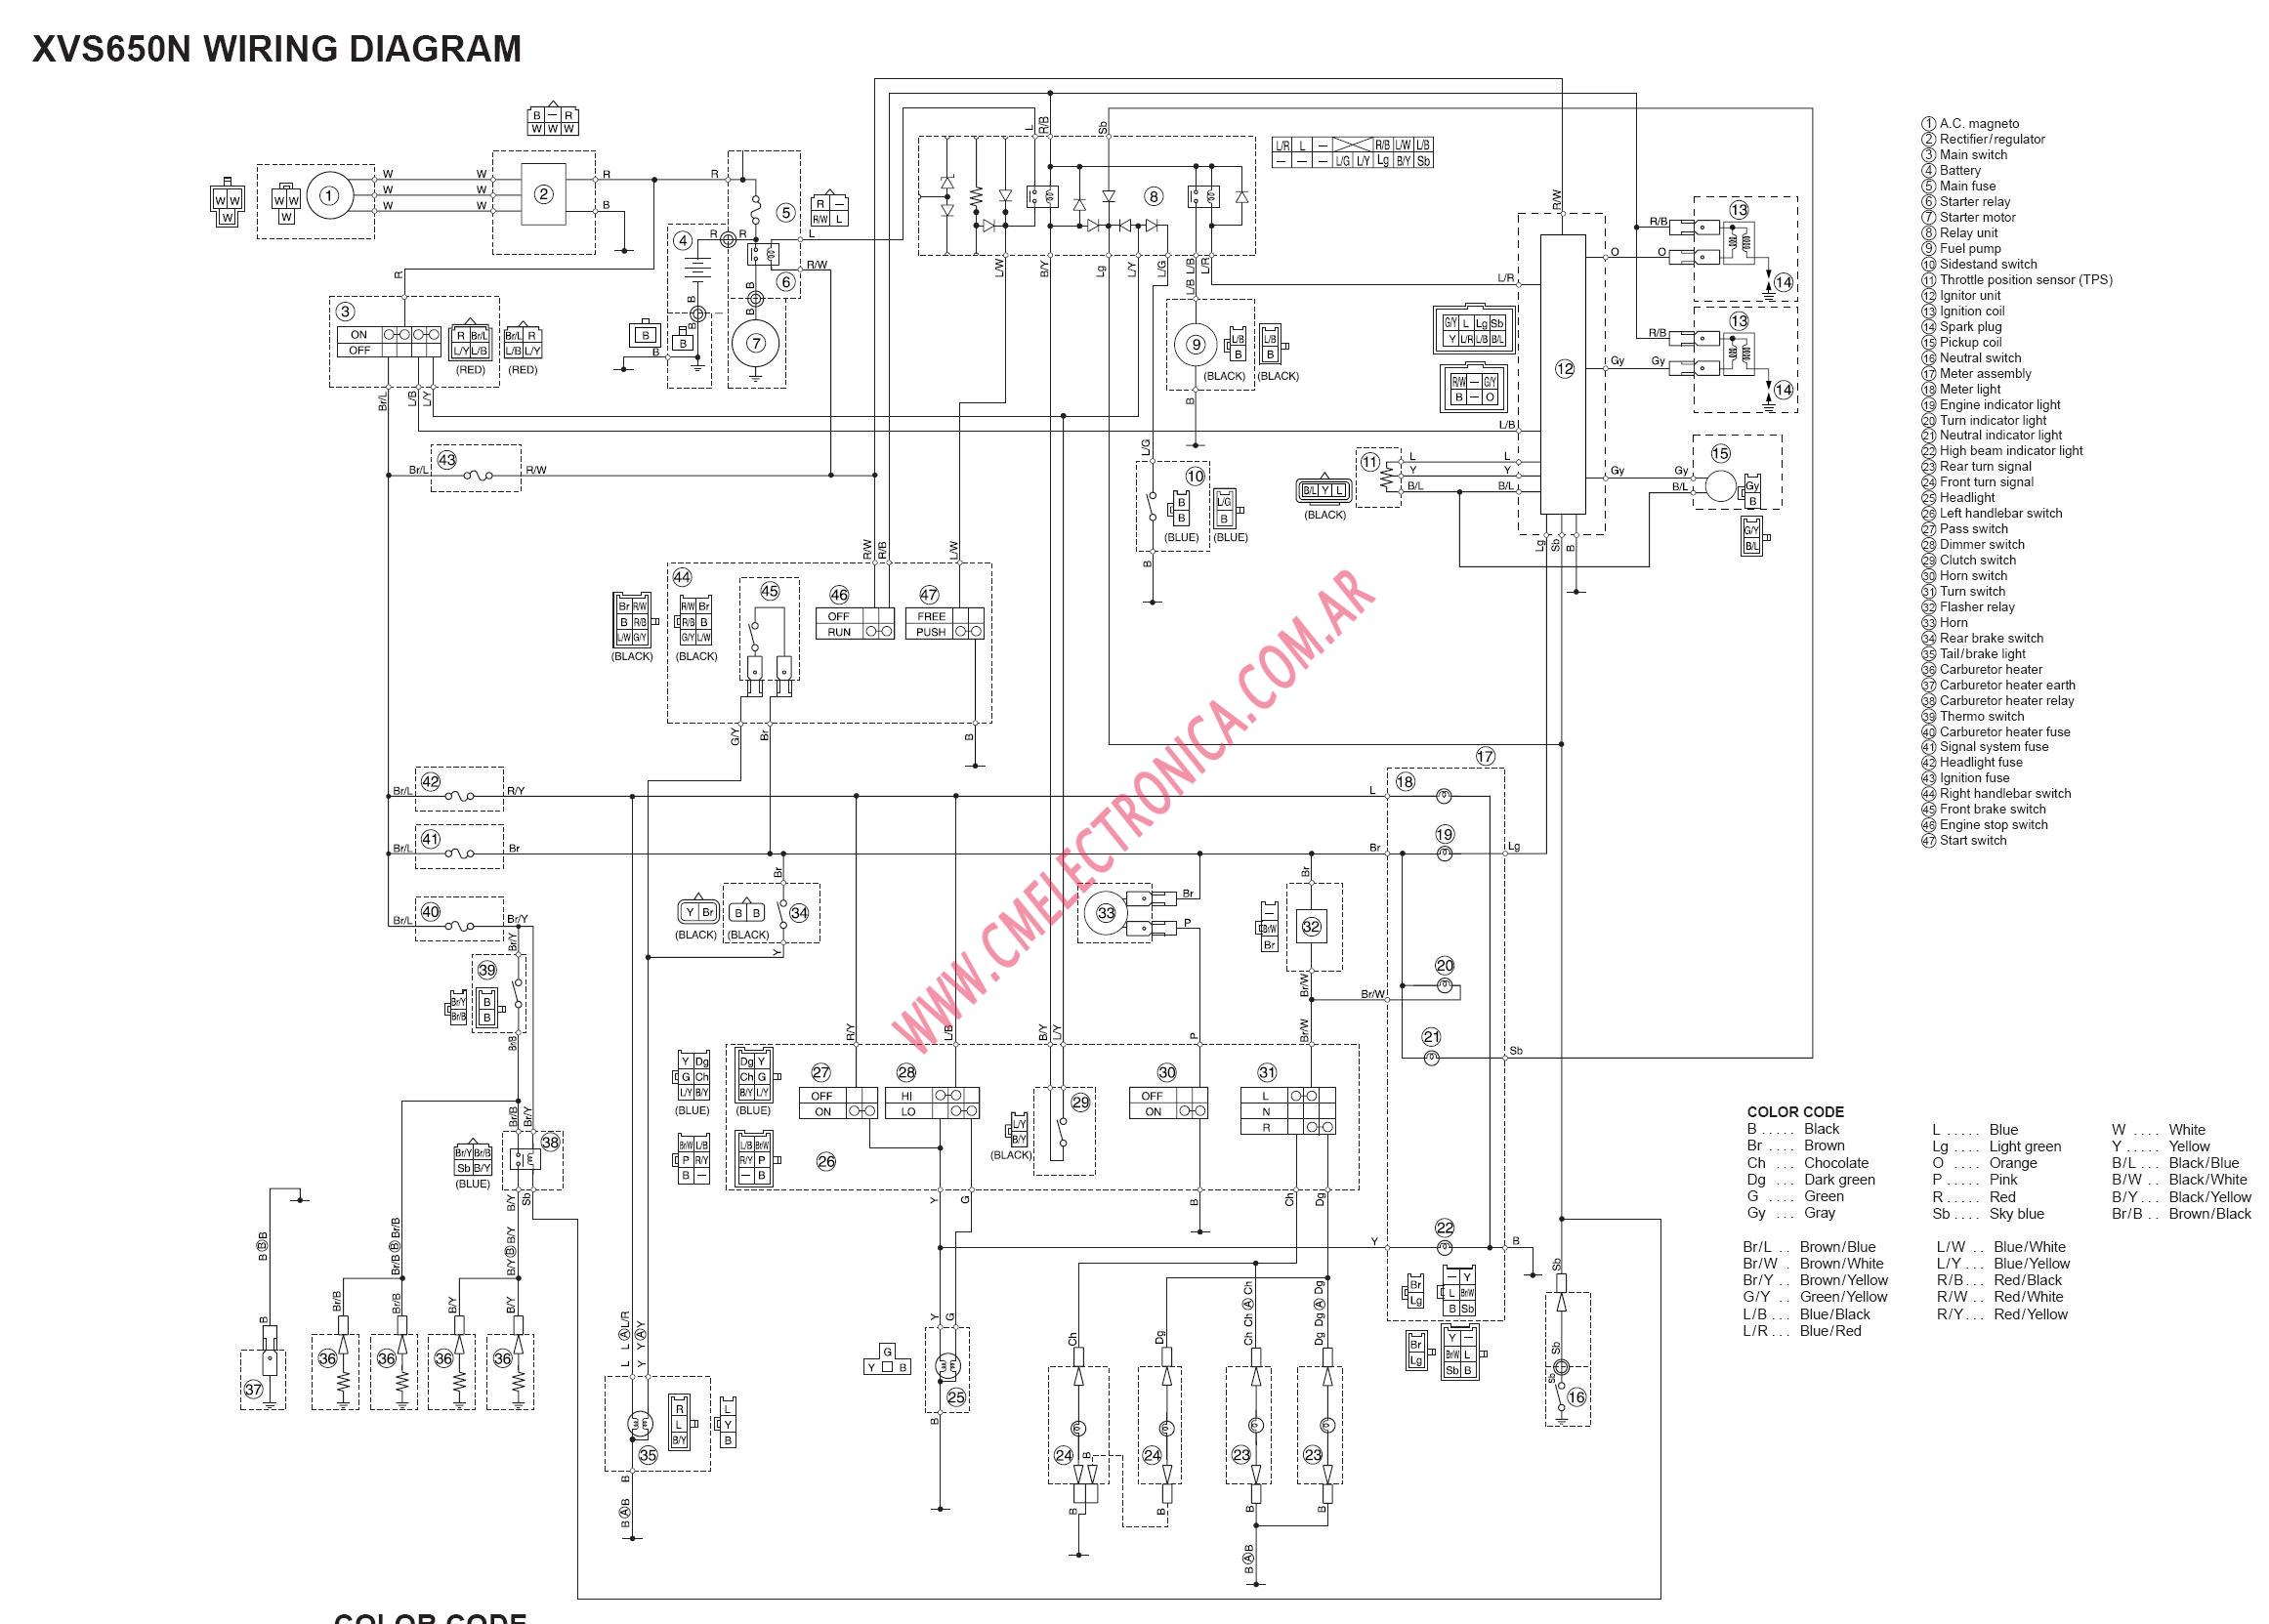 Vstar Wiring Diagram Starting Know About Ford 1300 Tractor Alternator 2001 V Star Another Blog U2022 Rh Ok2 Infoservice Ru Yamaha 650